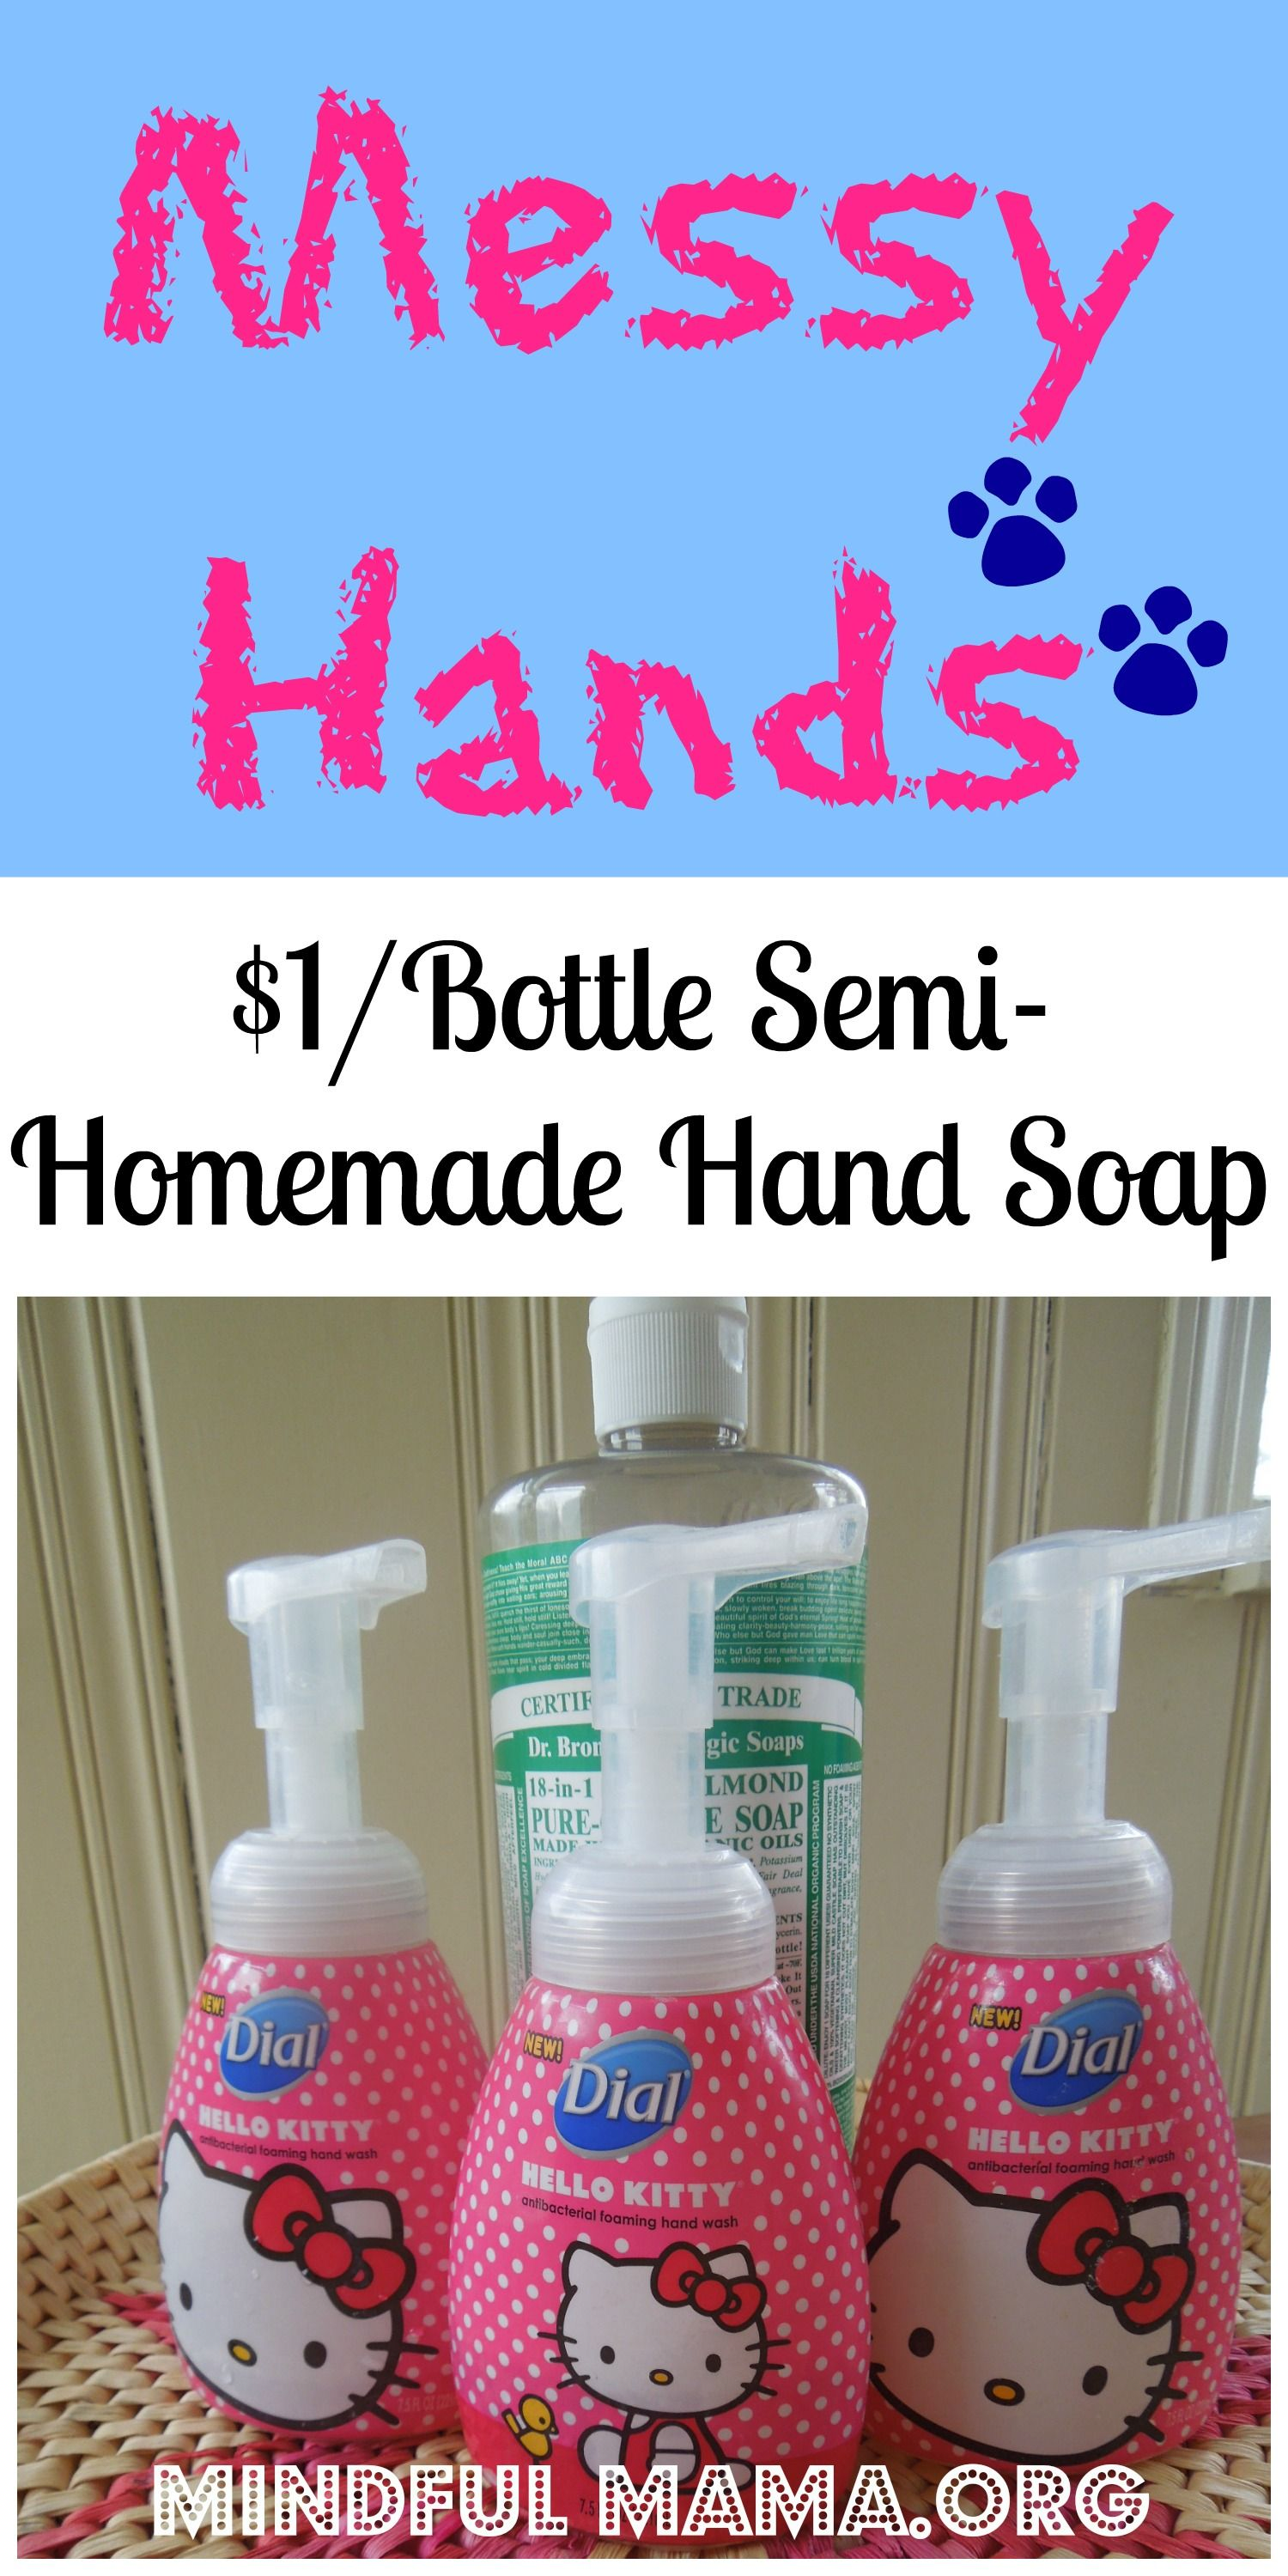 Cheap, easy and non-toxic hand and body soap for those messy hands in your house!! Mindful mama.org